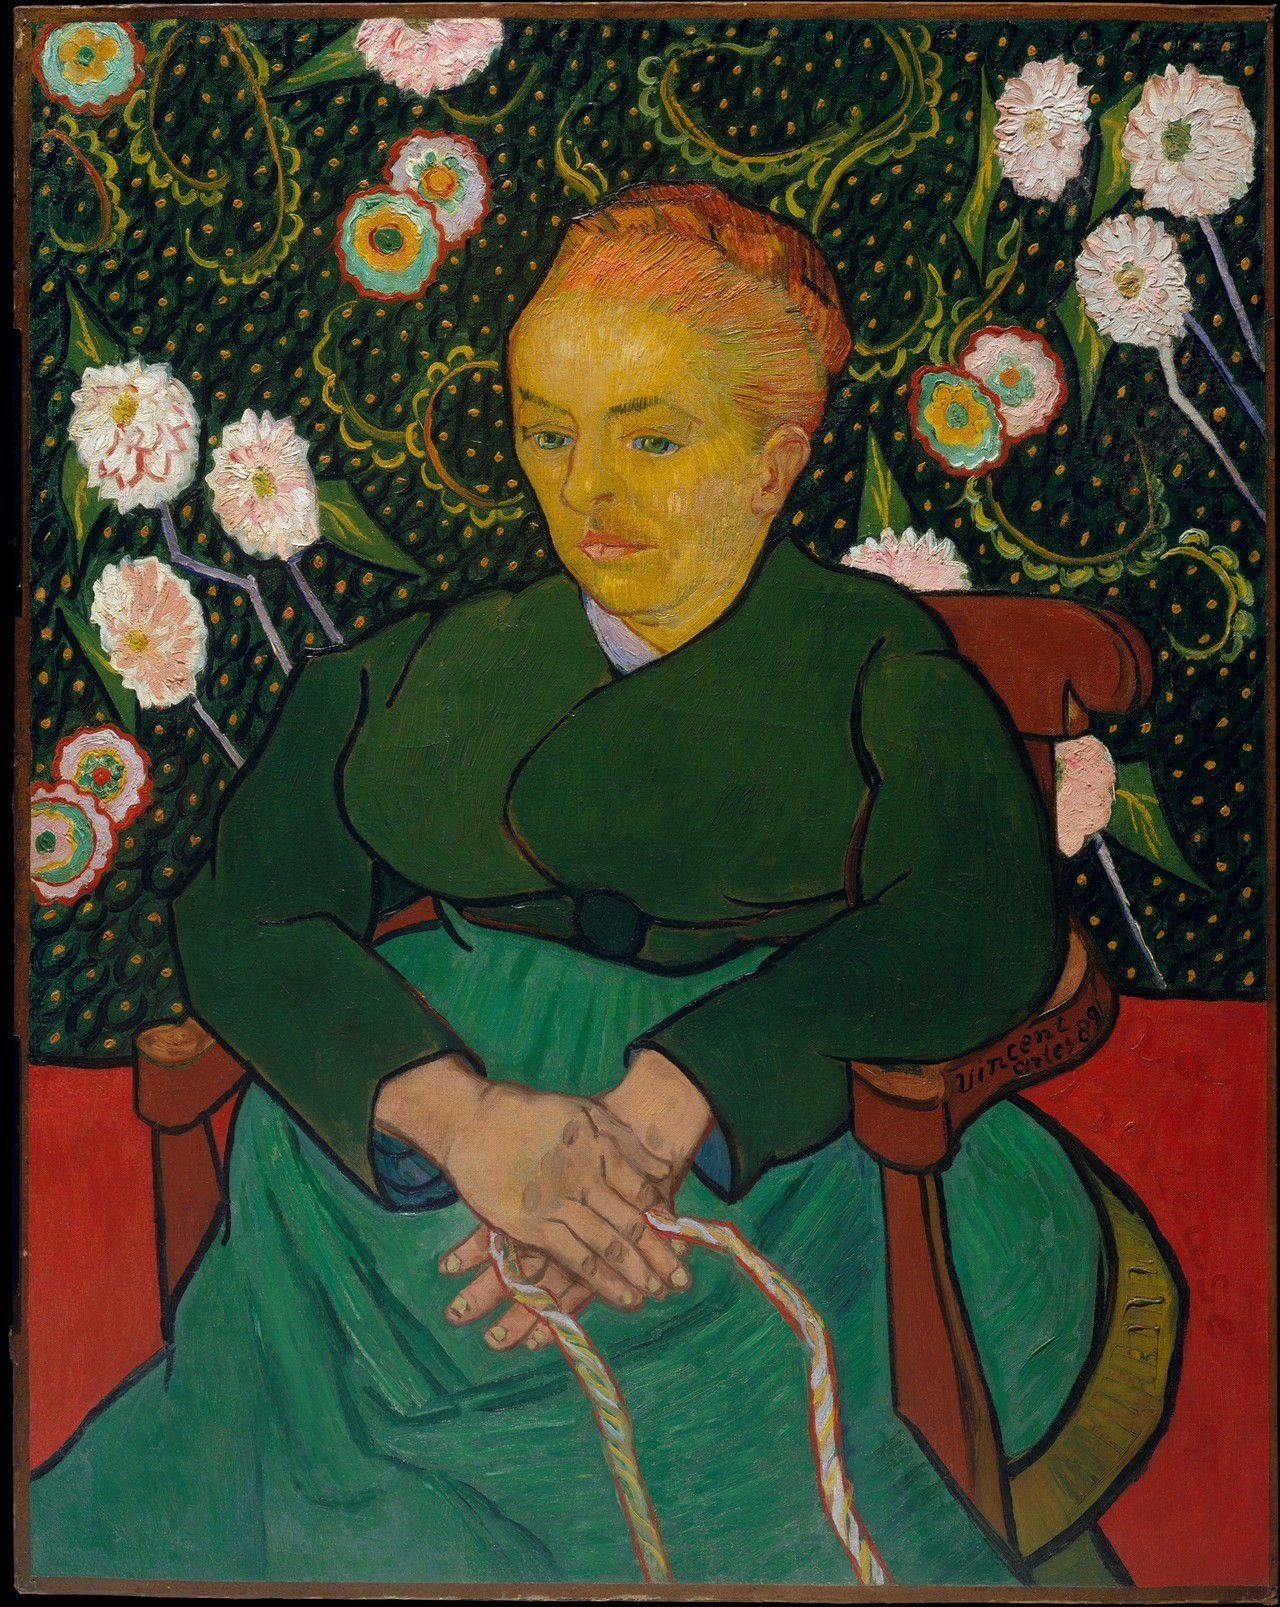 "Vincent Van Gogh, ""Le Berceuse"" (1888) / Stanley knife  In April 1978, this painting was damaged while on view at the Stedelijk Museum in Amsterdam. An unidentified 31-year-old Dutch man used a Stanley knife to make three 30–40cm cuts in the center of the painting before being overpowered by guards and taken into custody.   The man, a struggling artist, said his act had been one of protest against Amsterdam authorities - particularly the Beeldende Kunstenaars Regeling, who had denied him welfare payments that would have supported his artmaking.    Though severely damaged, the painting was eventually restored and returned to public view."